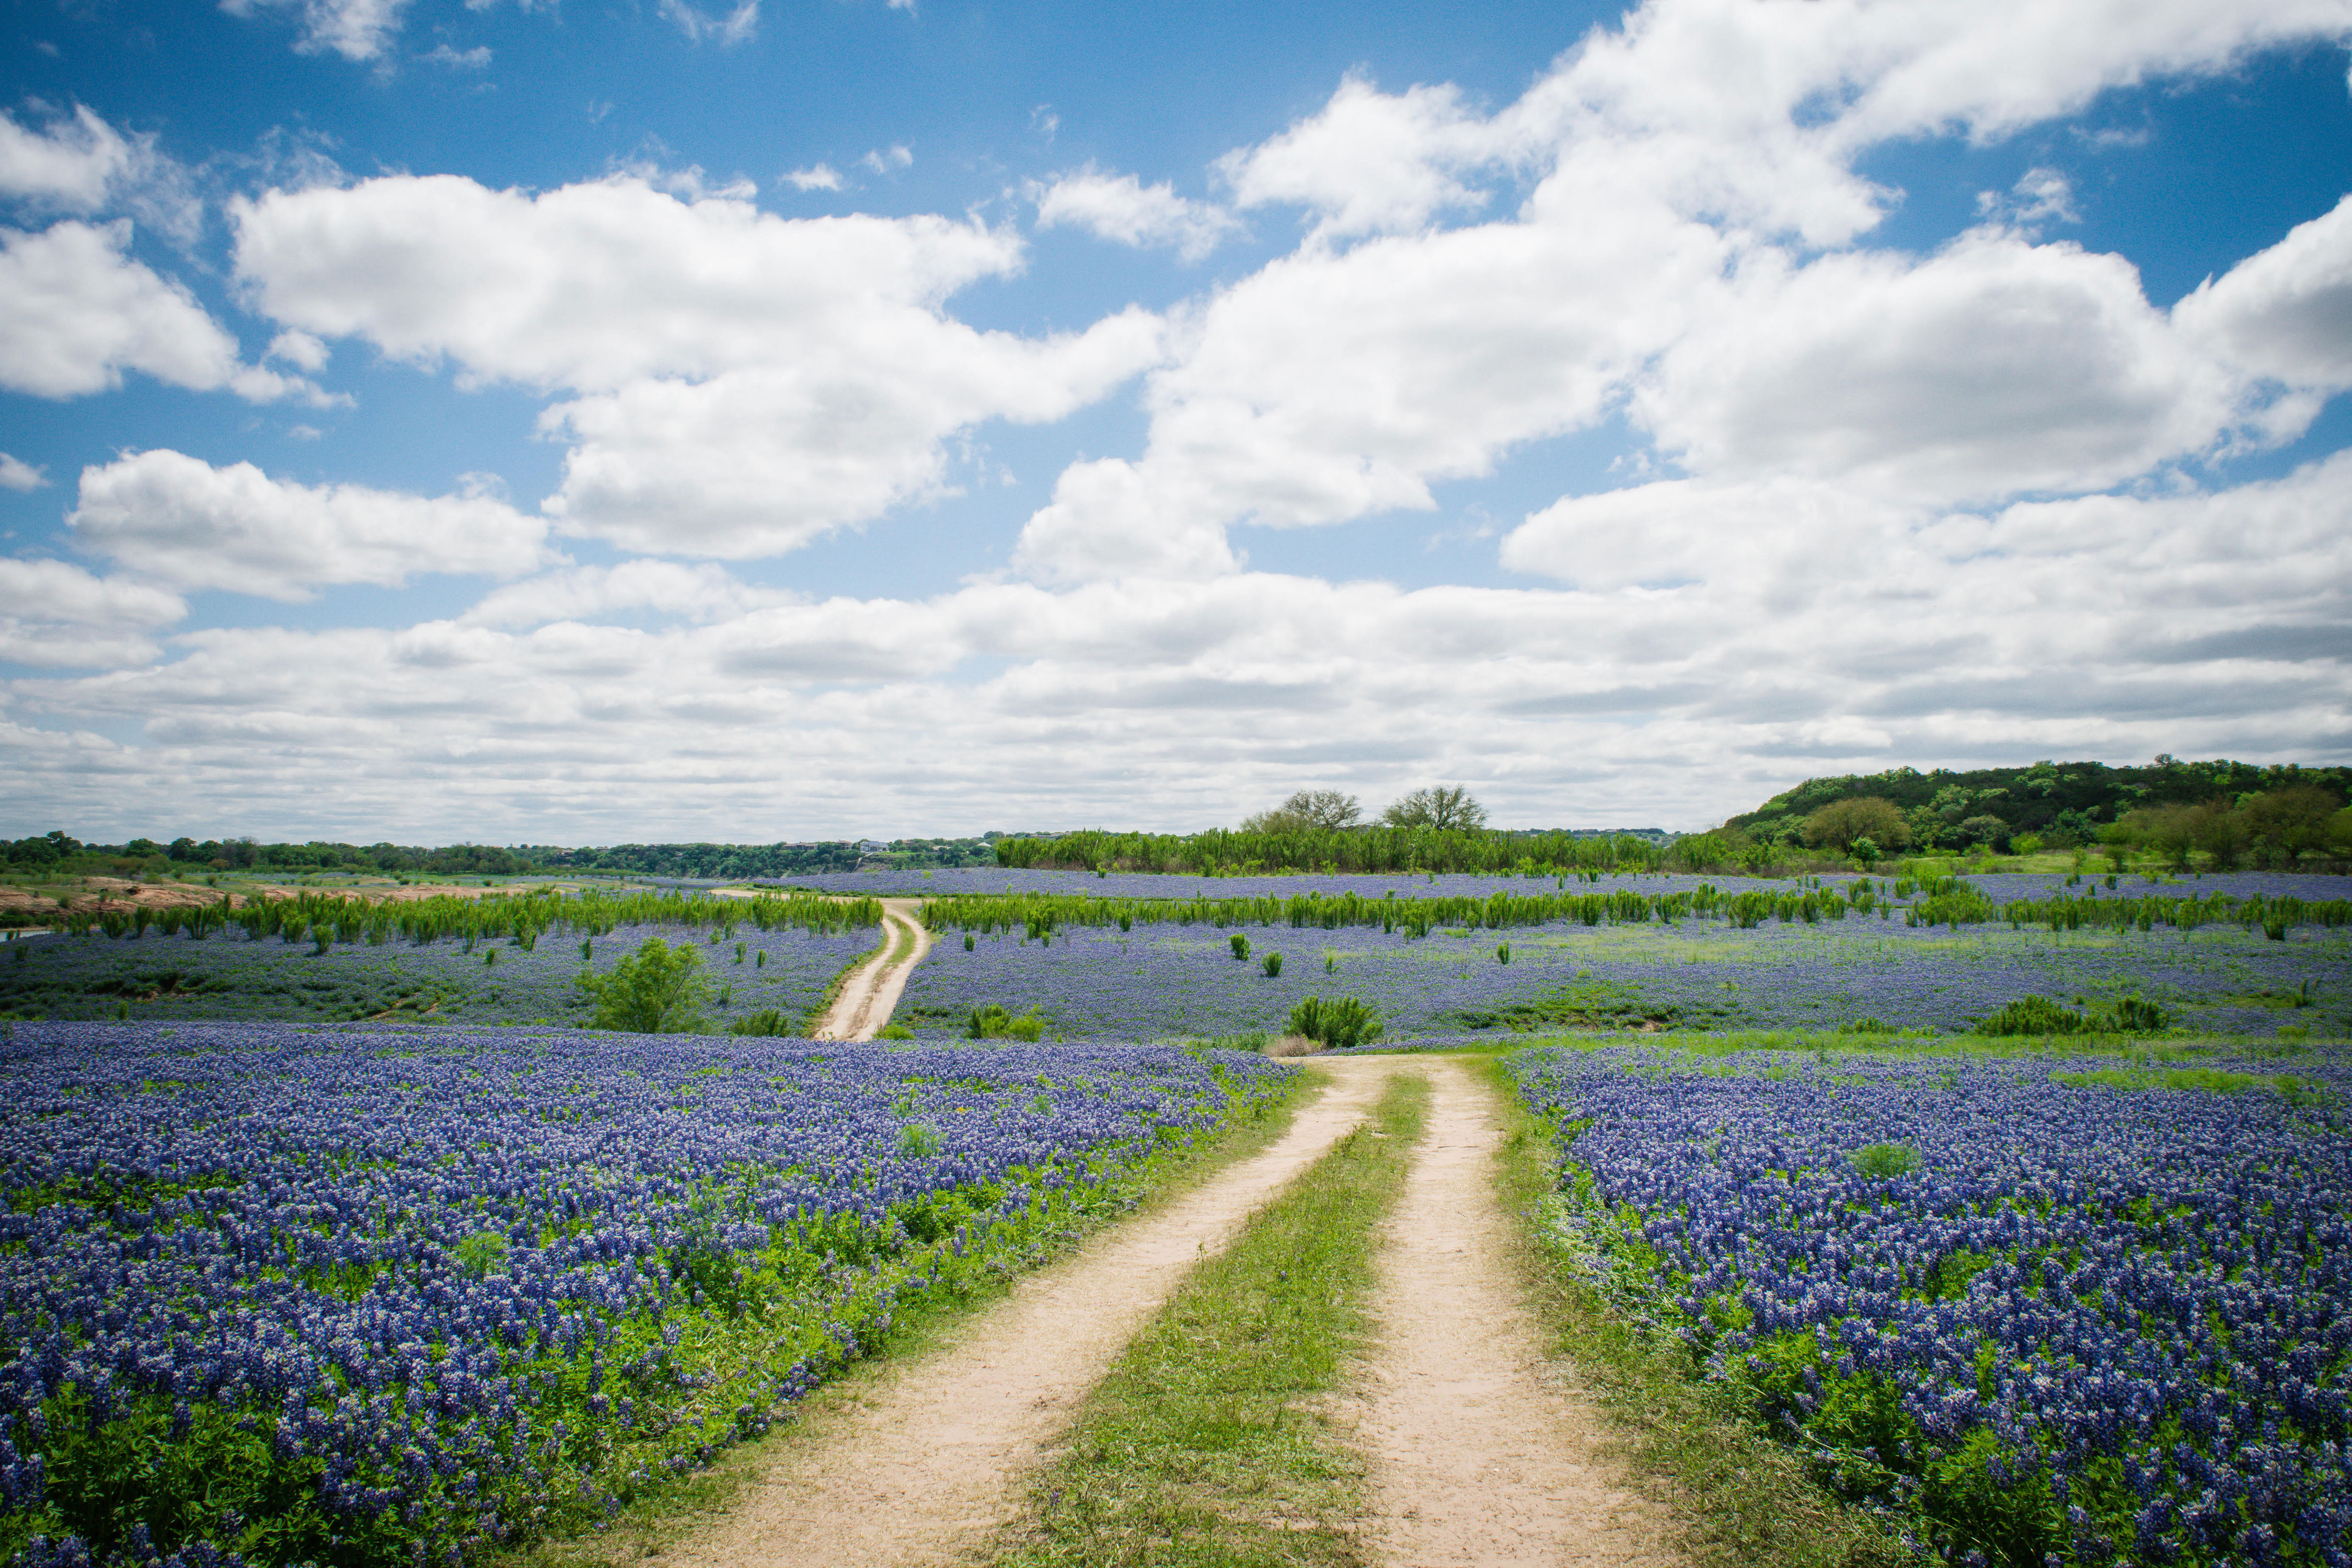 Five Colorful Facts You Should Know About the Bluebonnet